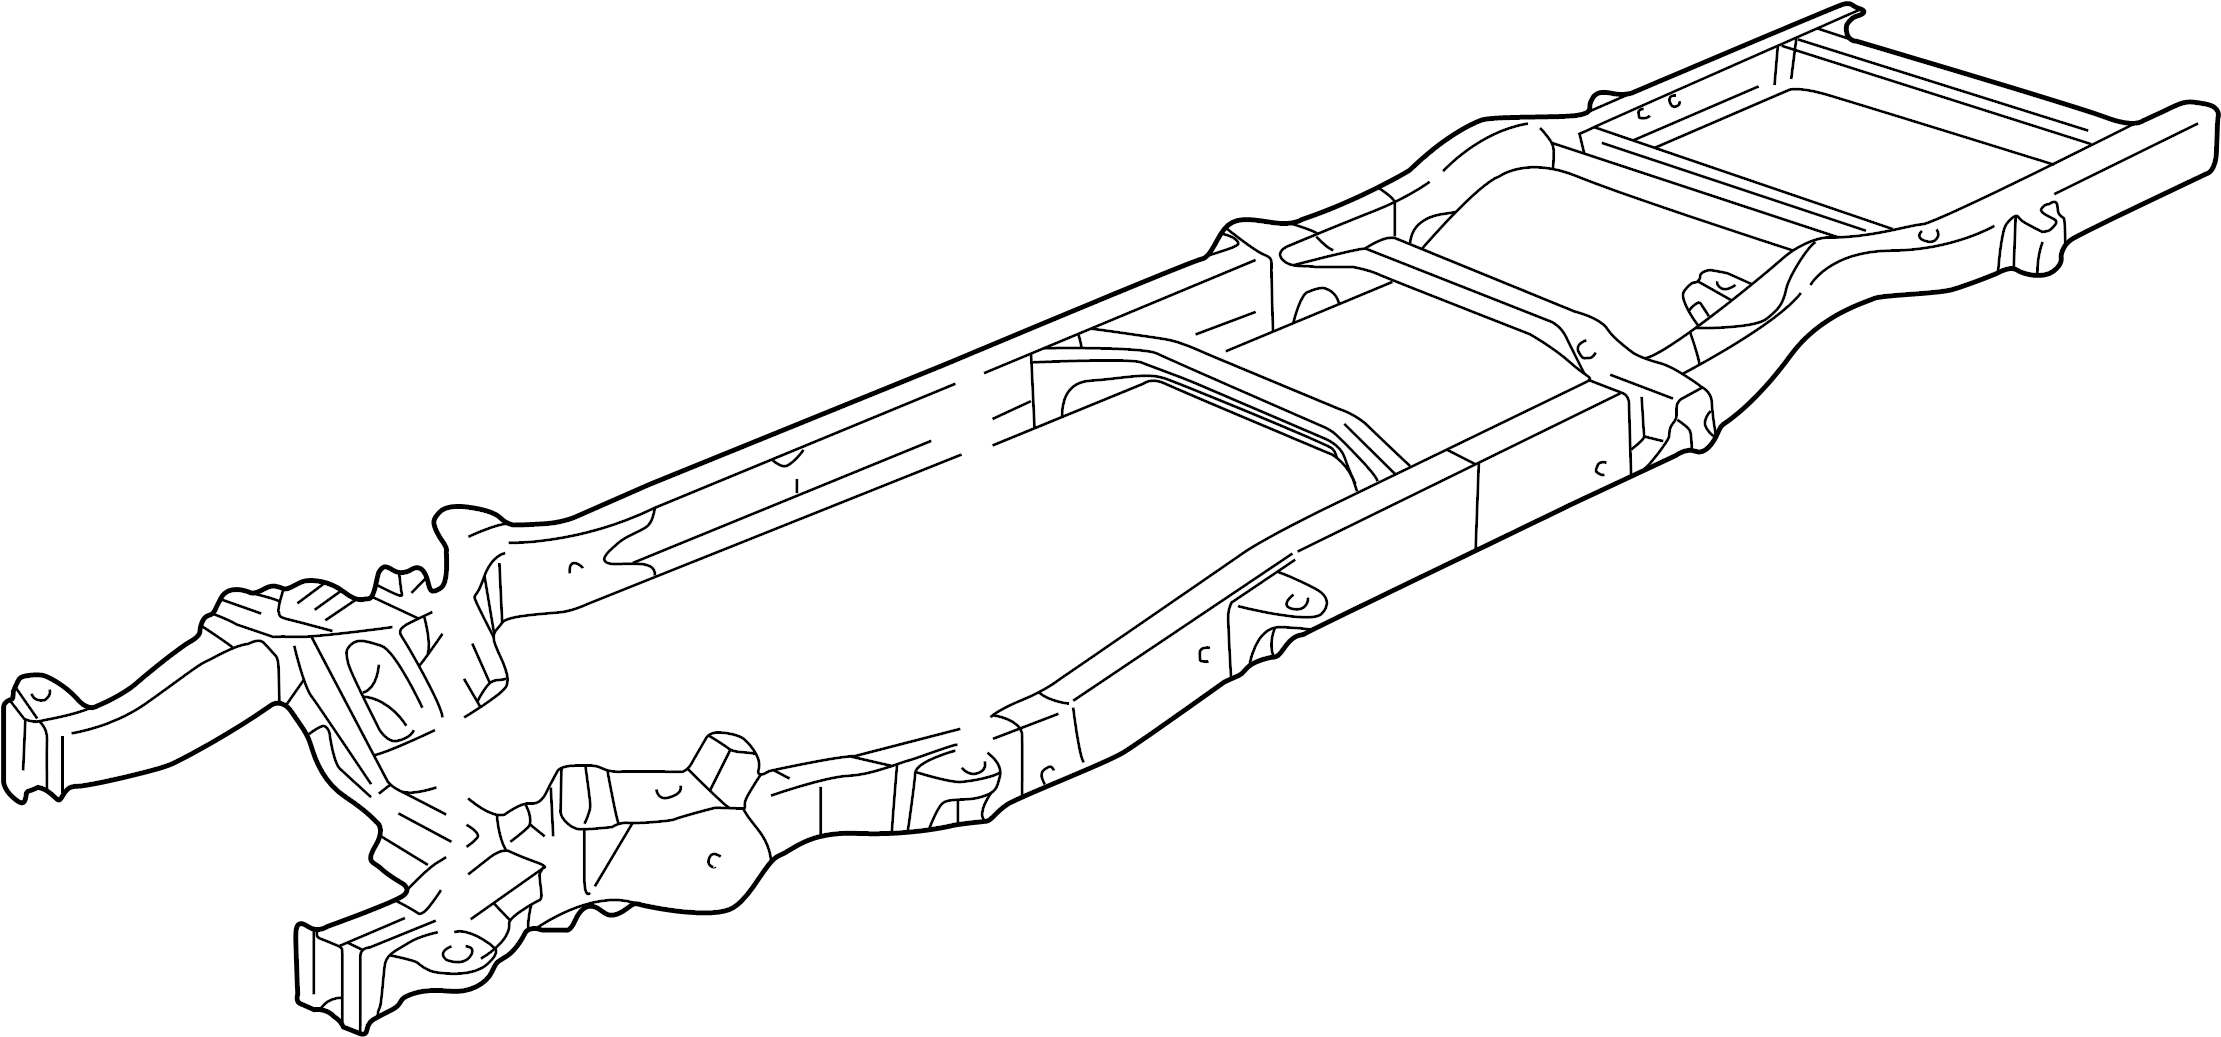 Chevrolet G20 Frame Chassis Wbcutaway